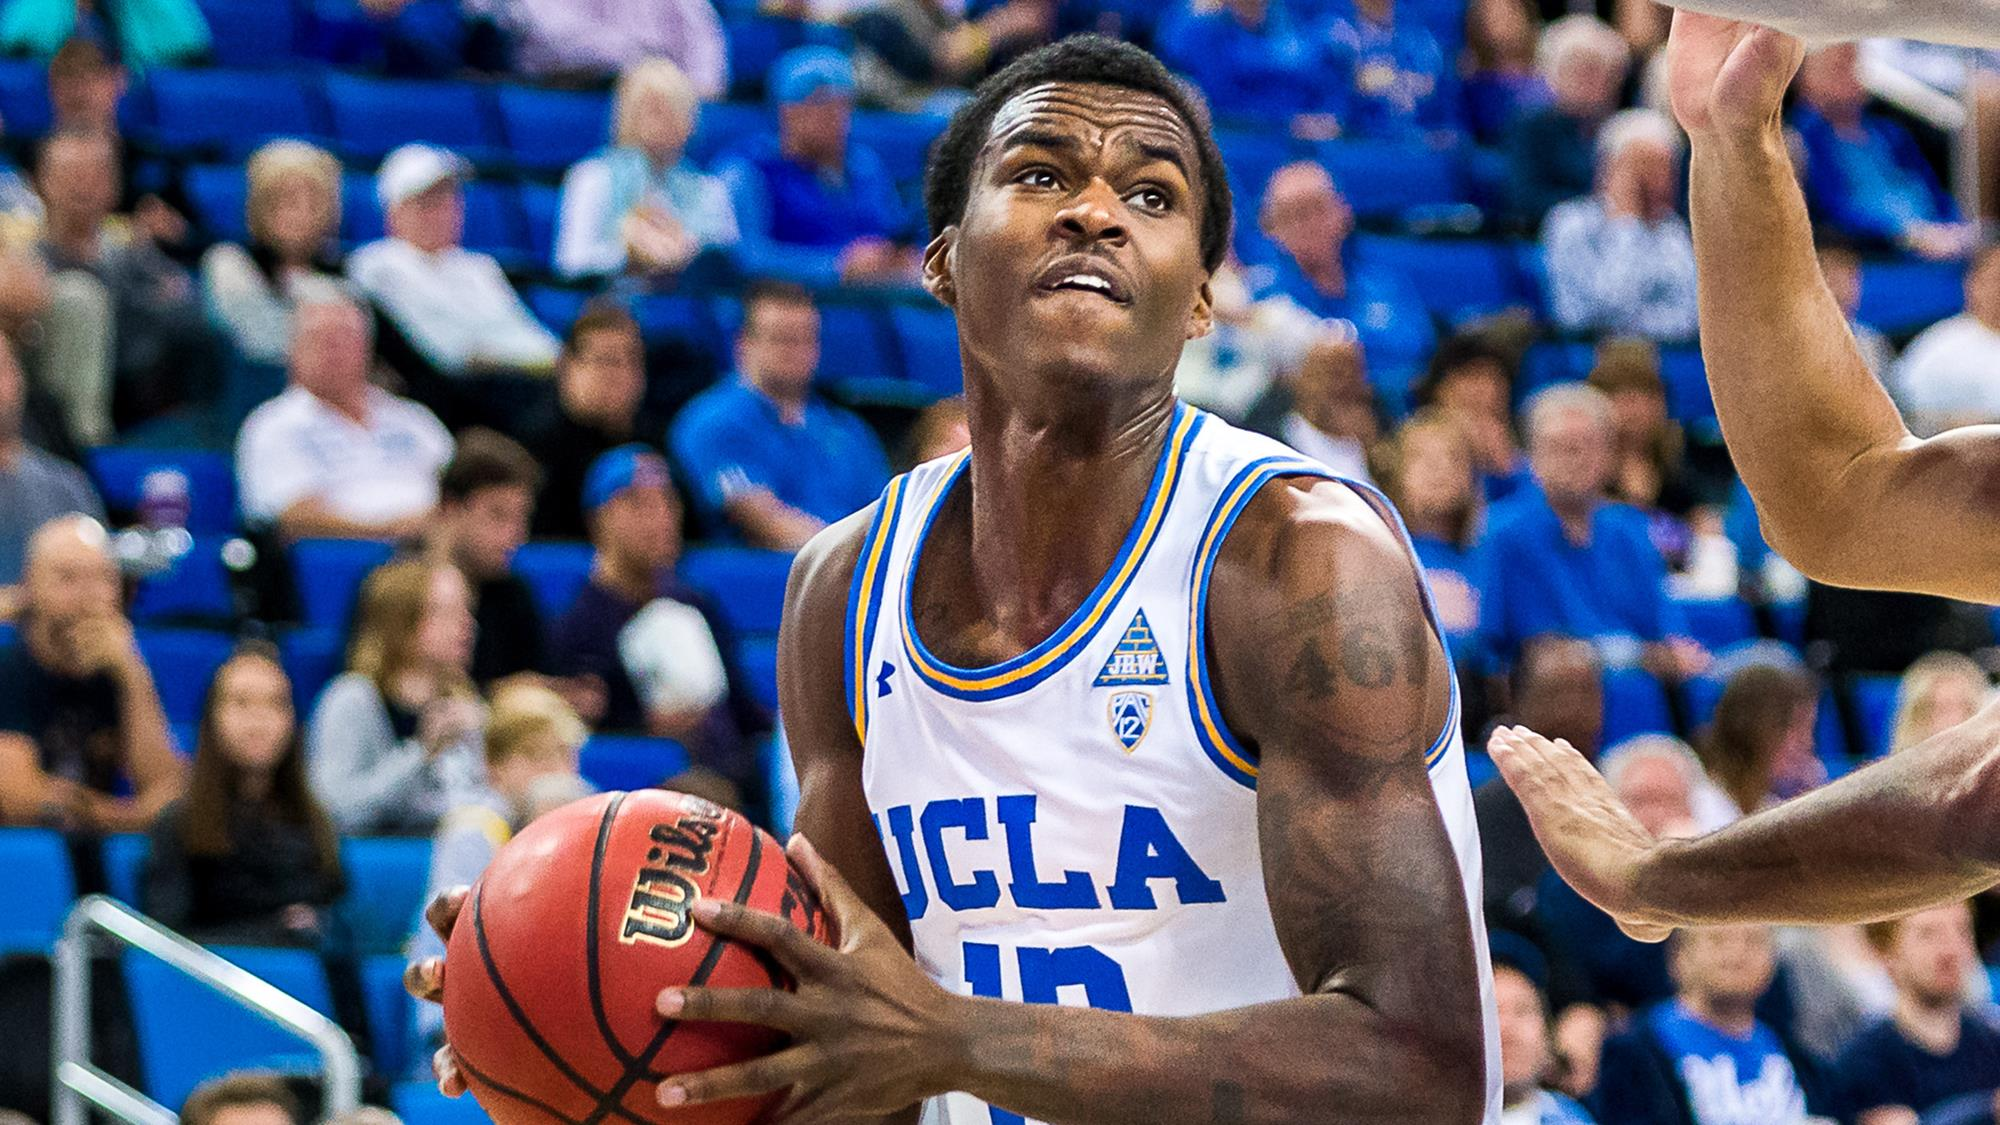 364417fda UCLA to Open Pac-12 Play Versus Stanford on Thursday - UCLA